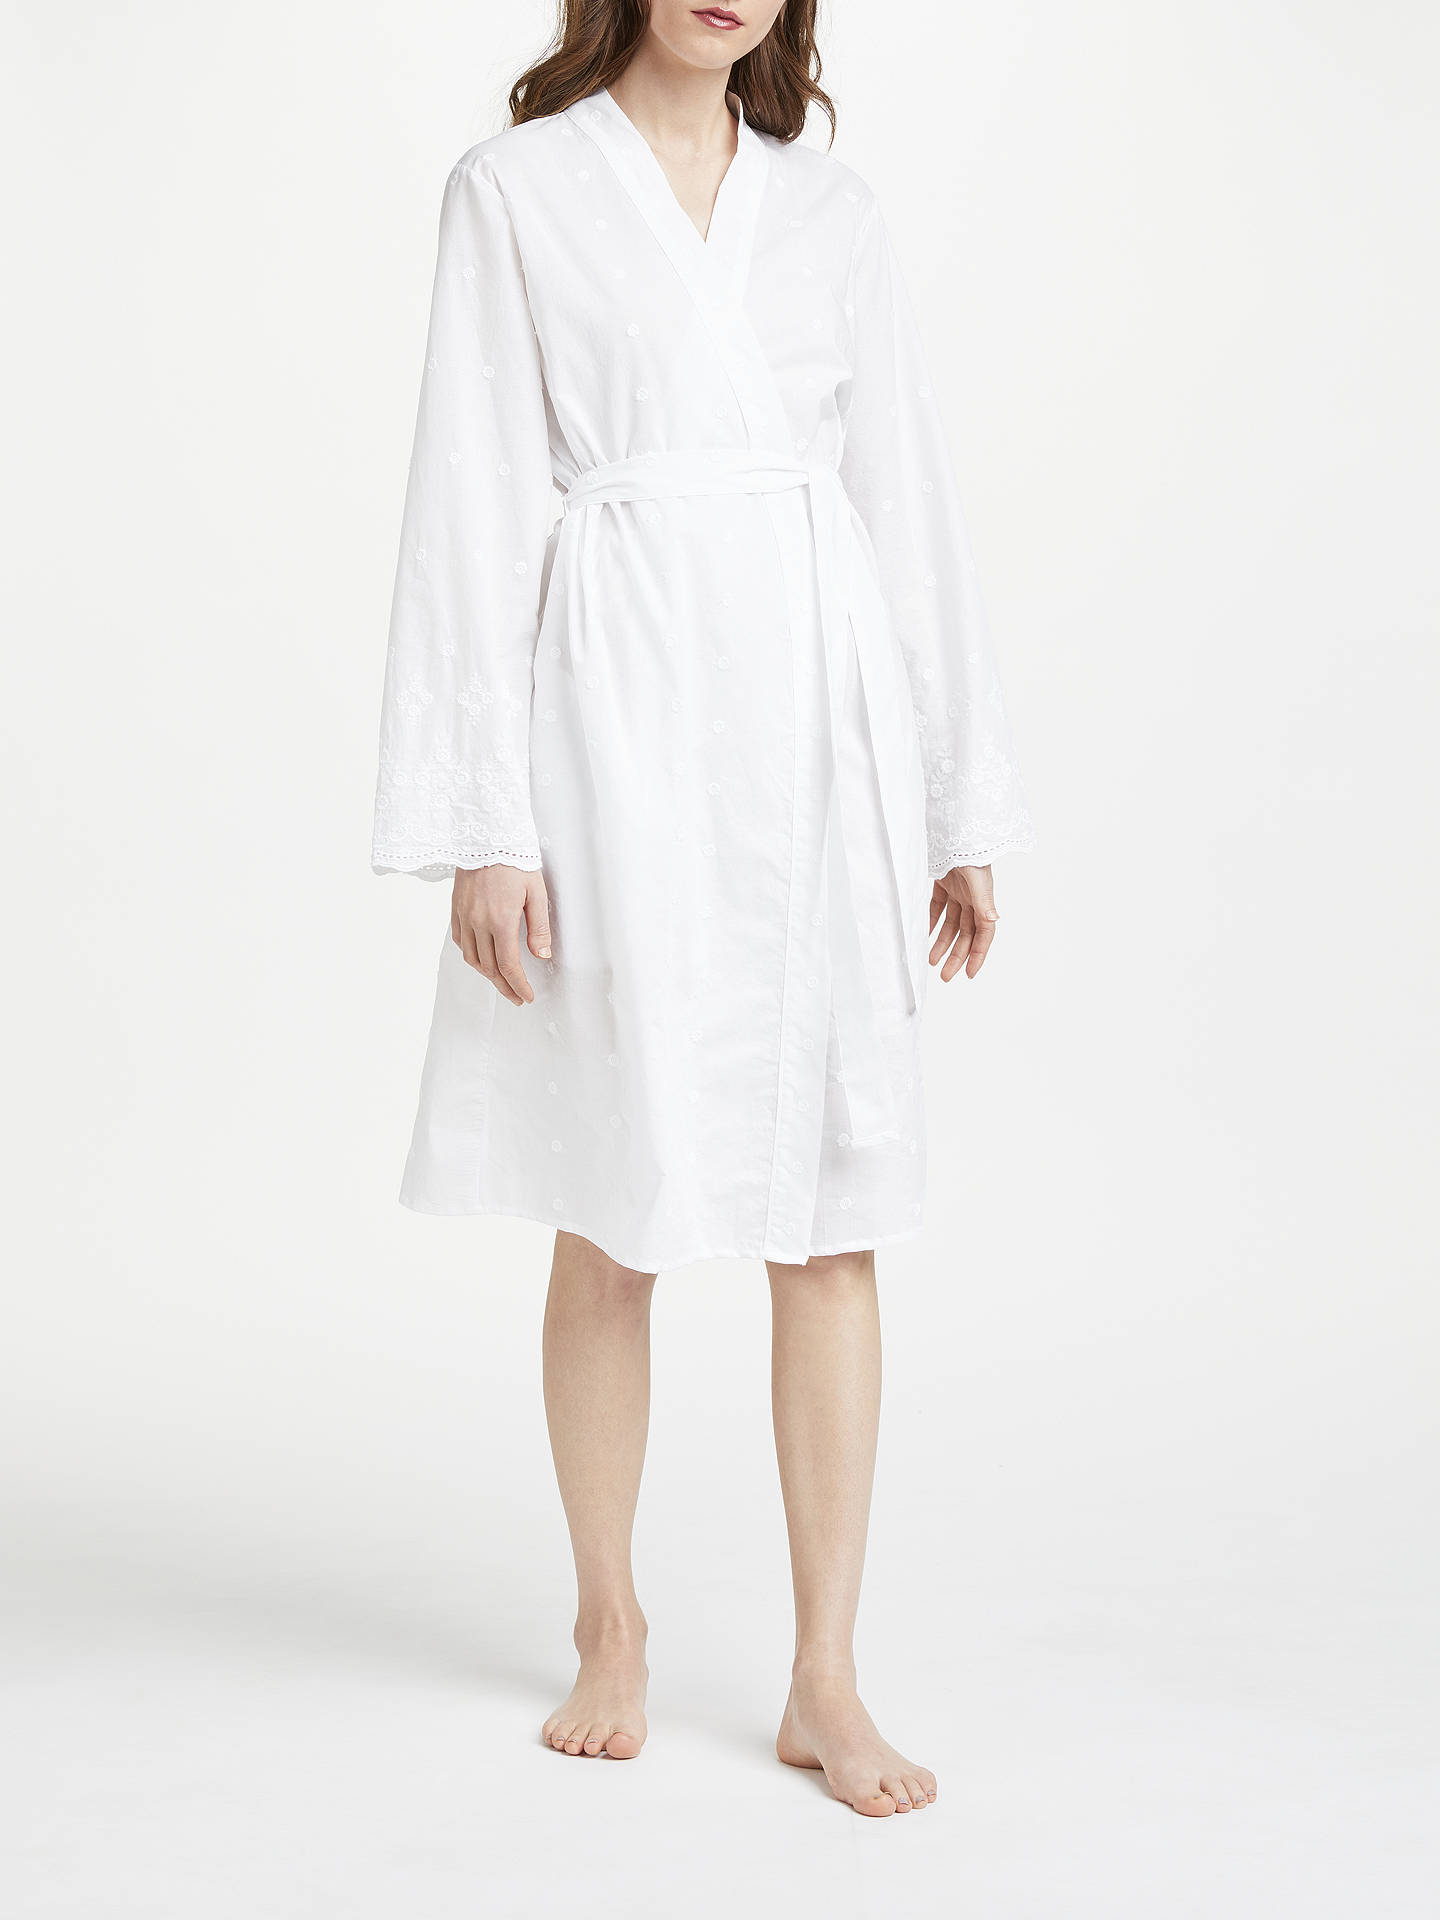 4f9376d953e BuyJohn Lewis   Partners Broderie Anglaise Cotton Dressing Gown